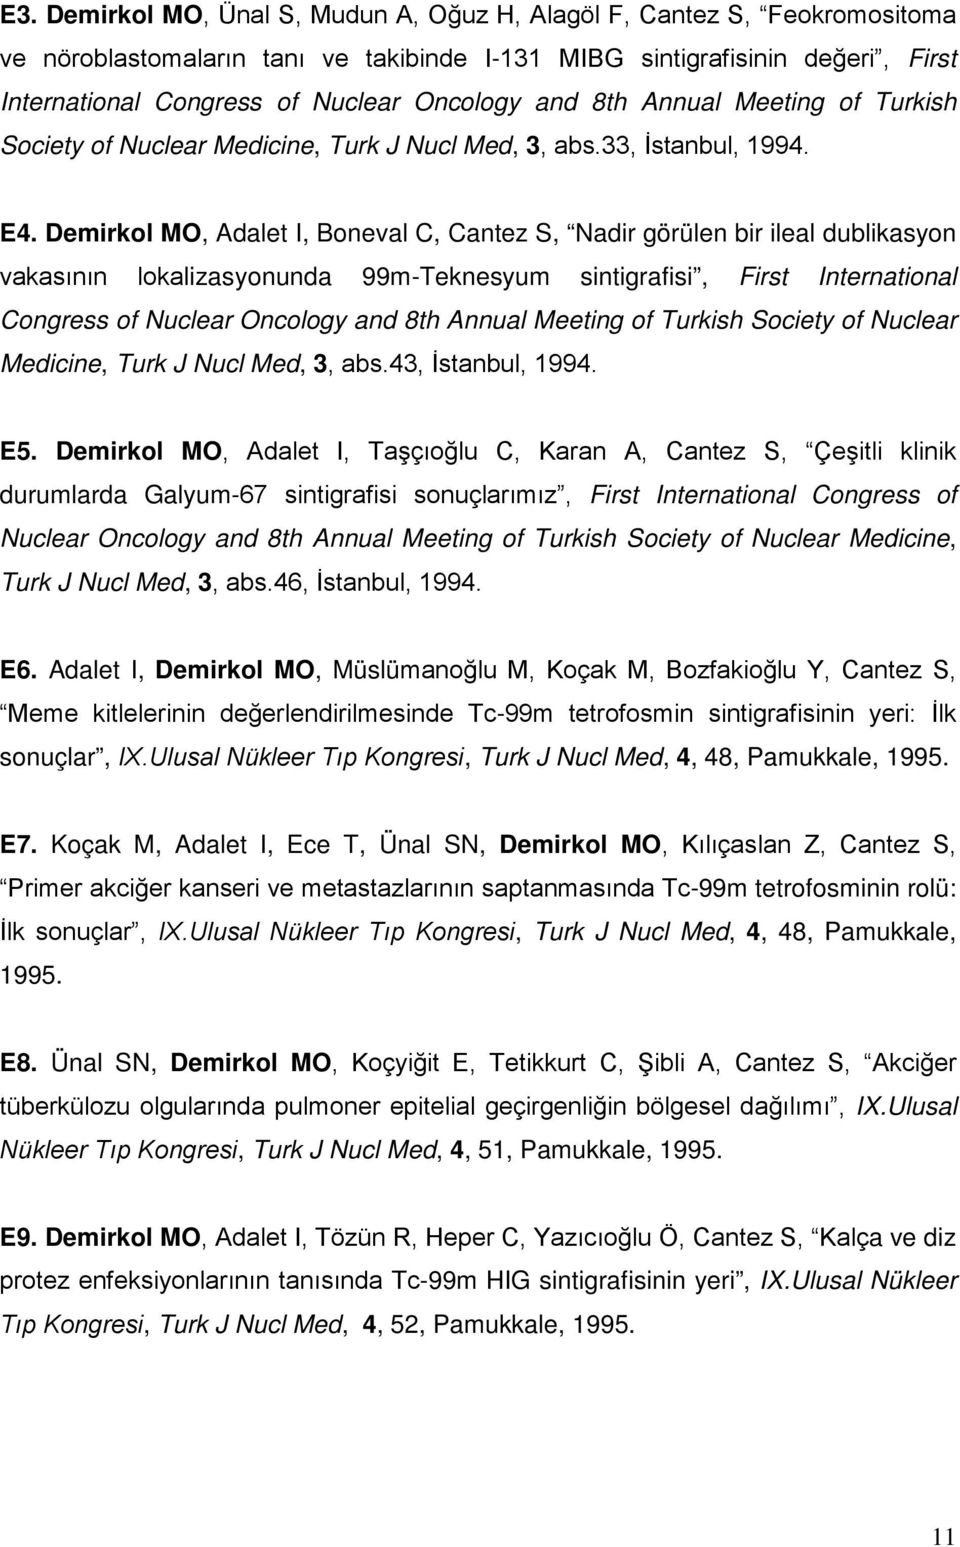 Demirkol MO, Adalet I, Boneval C, Cantez S, Nadir görülen bir ileal dublikasyon vakasının lokalizasyonunda 99m-Teknesyum sintigrafisi, First International Congress of Nuclear Oncology and 8th Annual